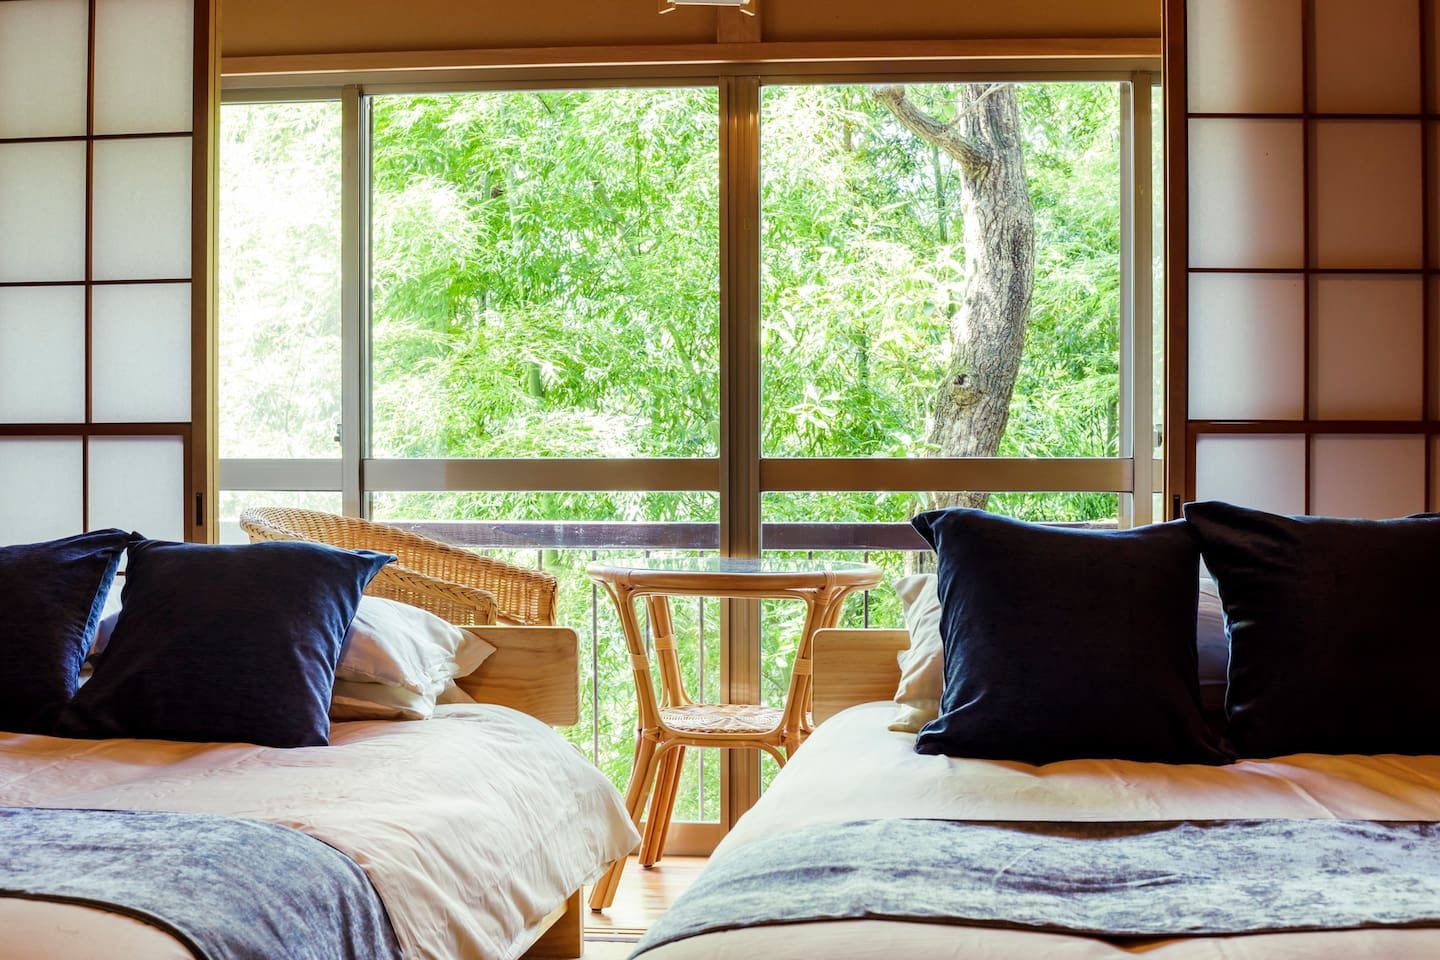 A bedroom is just next to the trees, offering some comfortable space for you to relax and sleep.